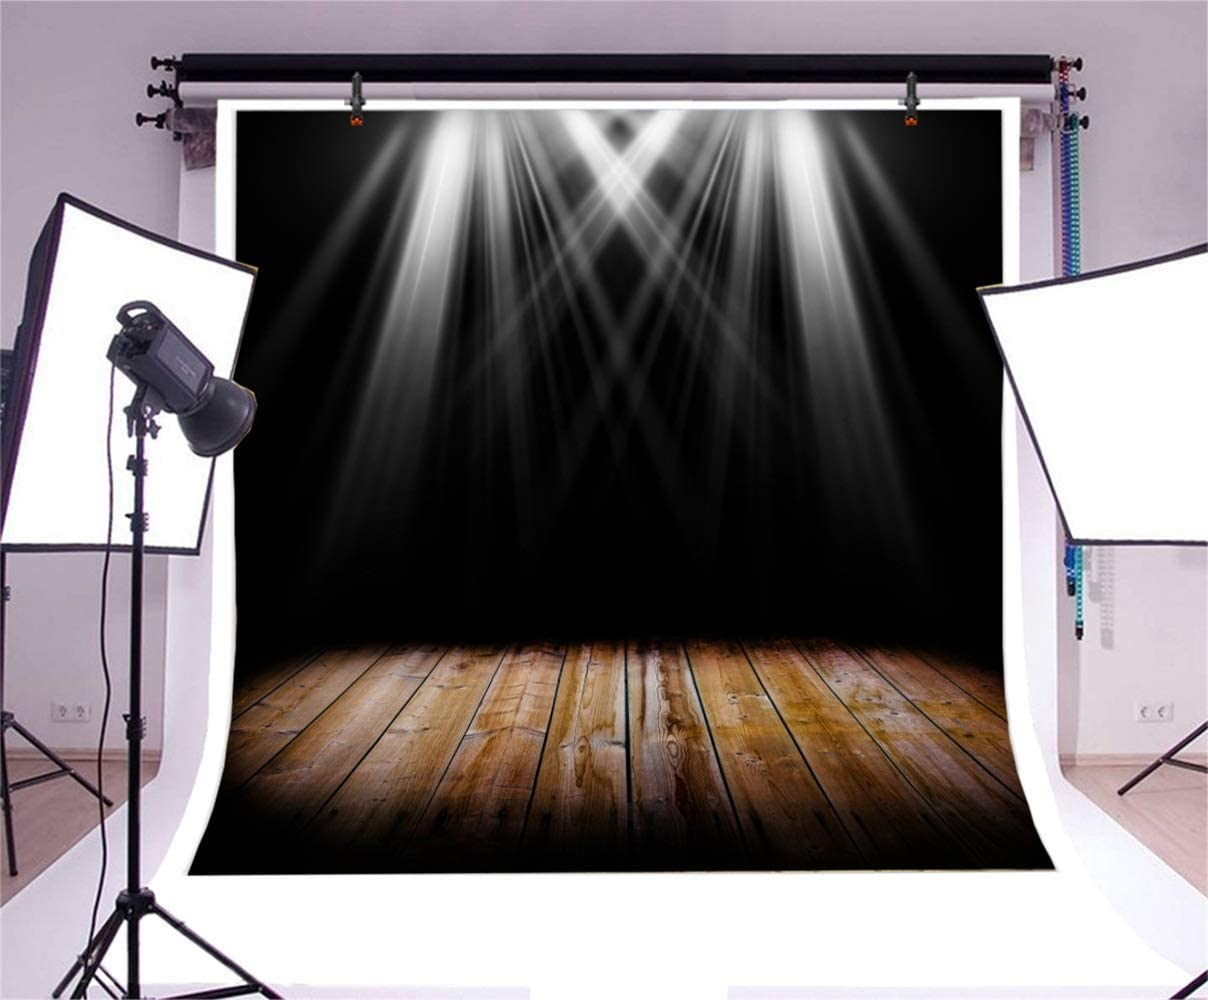 8x8ft Grunge Vintage Stage Backdrop Polyester Shabby Heart Shape Door Red Curtain Square Stone Stairs Stage with Light Decors Rustic Floor Background Live Show TV Programming Child Adult Shoot